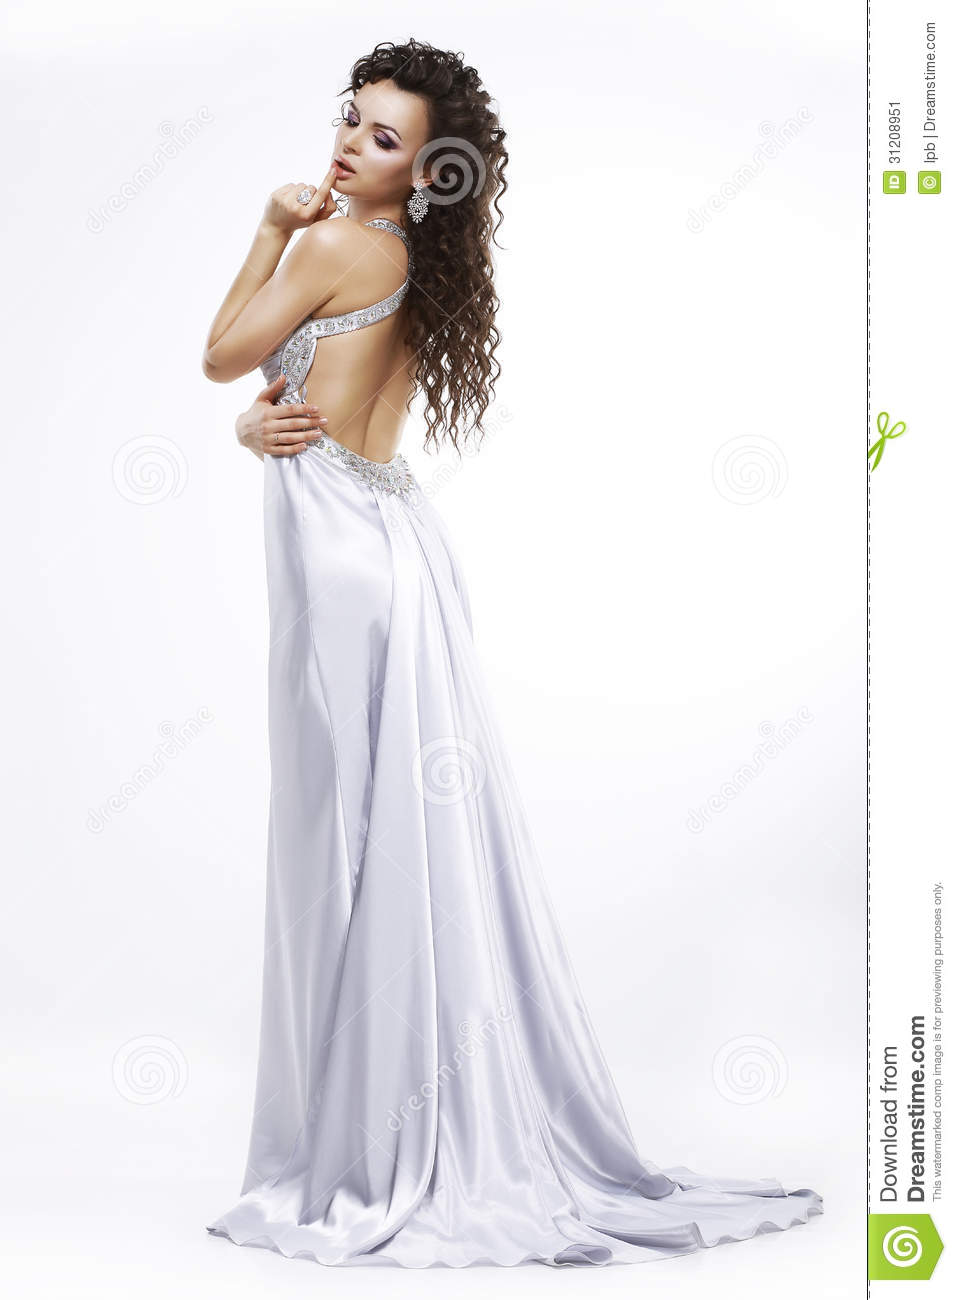 Luxury Elegance Glamorous Woman In Light Shiny Dress Dolce Vita Stock Image Image 31208951